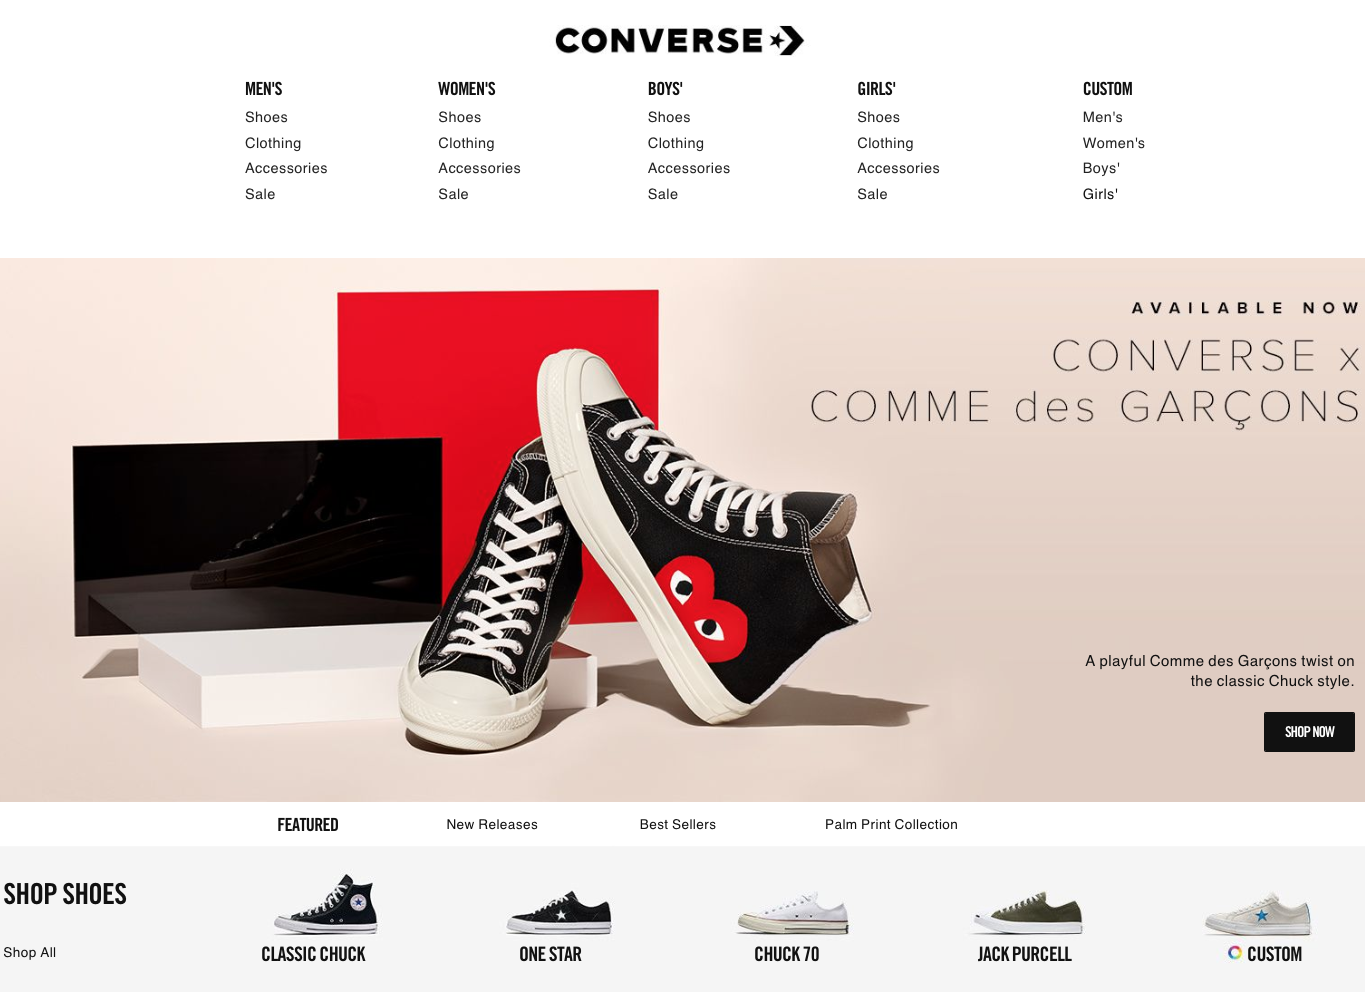 Achromatic | Color | Converse, Converse shoes, Jack purcell